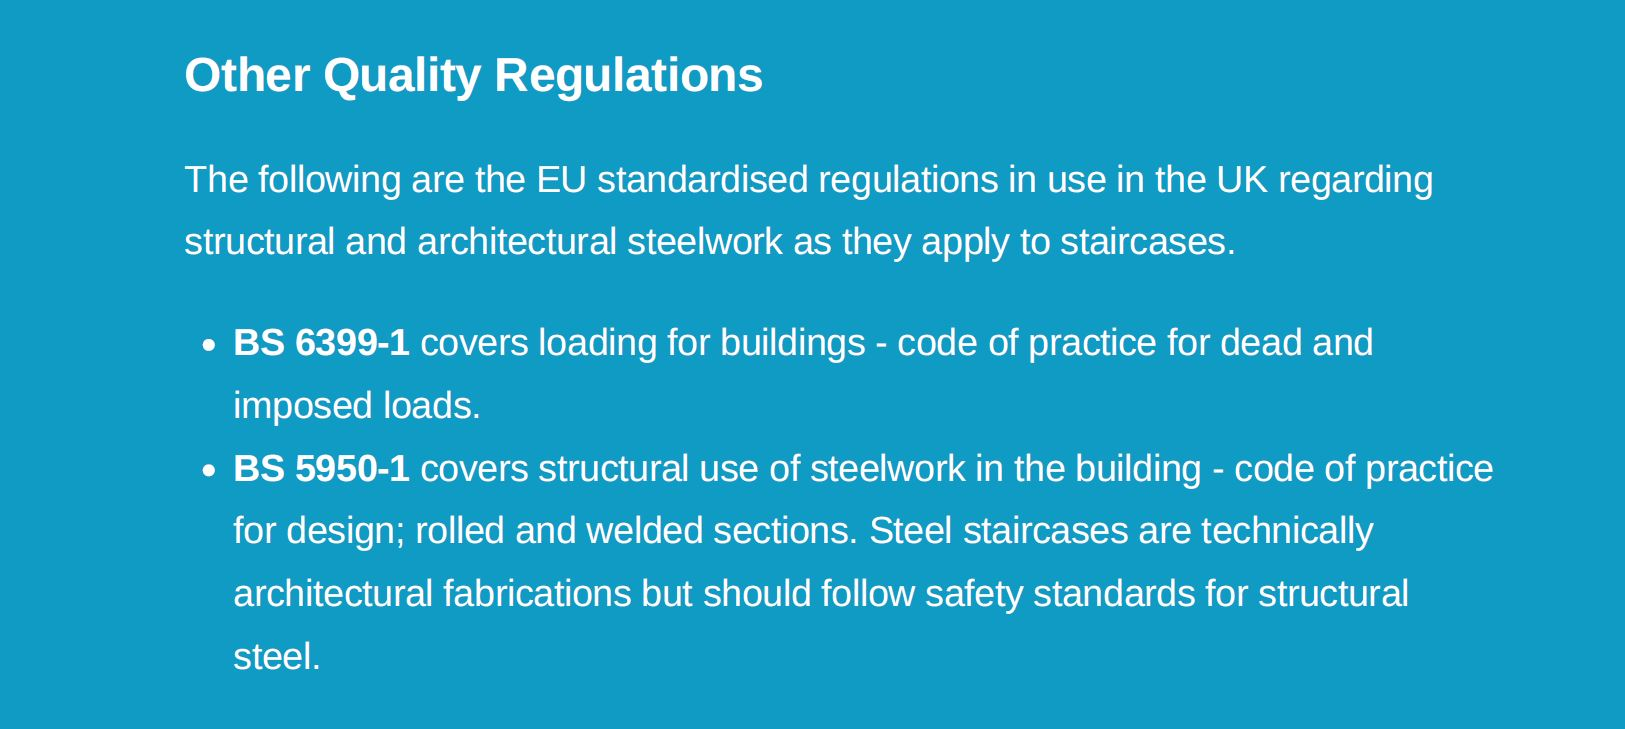 other quality regulations